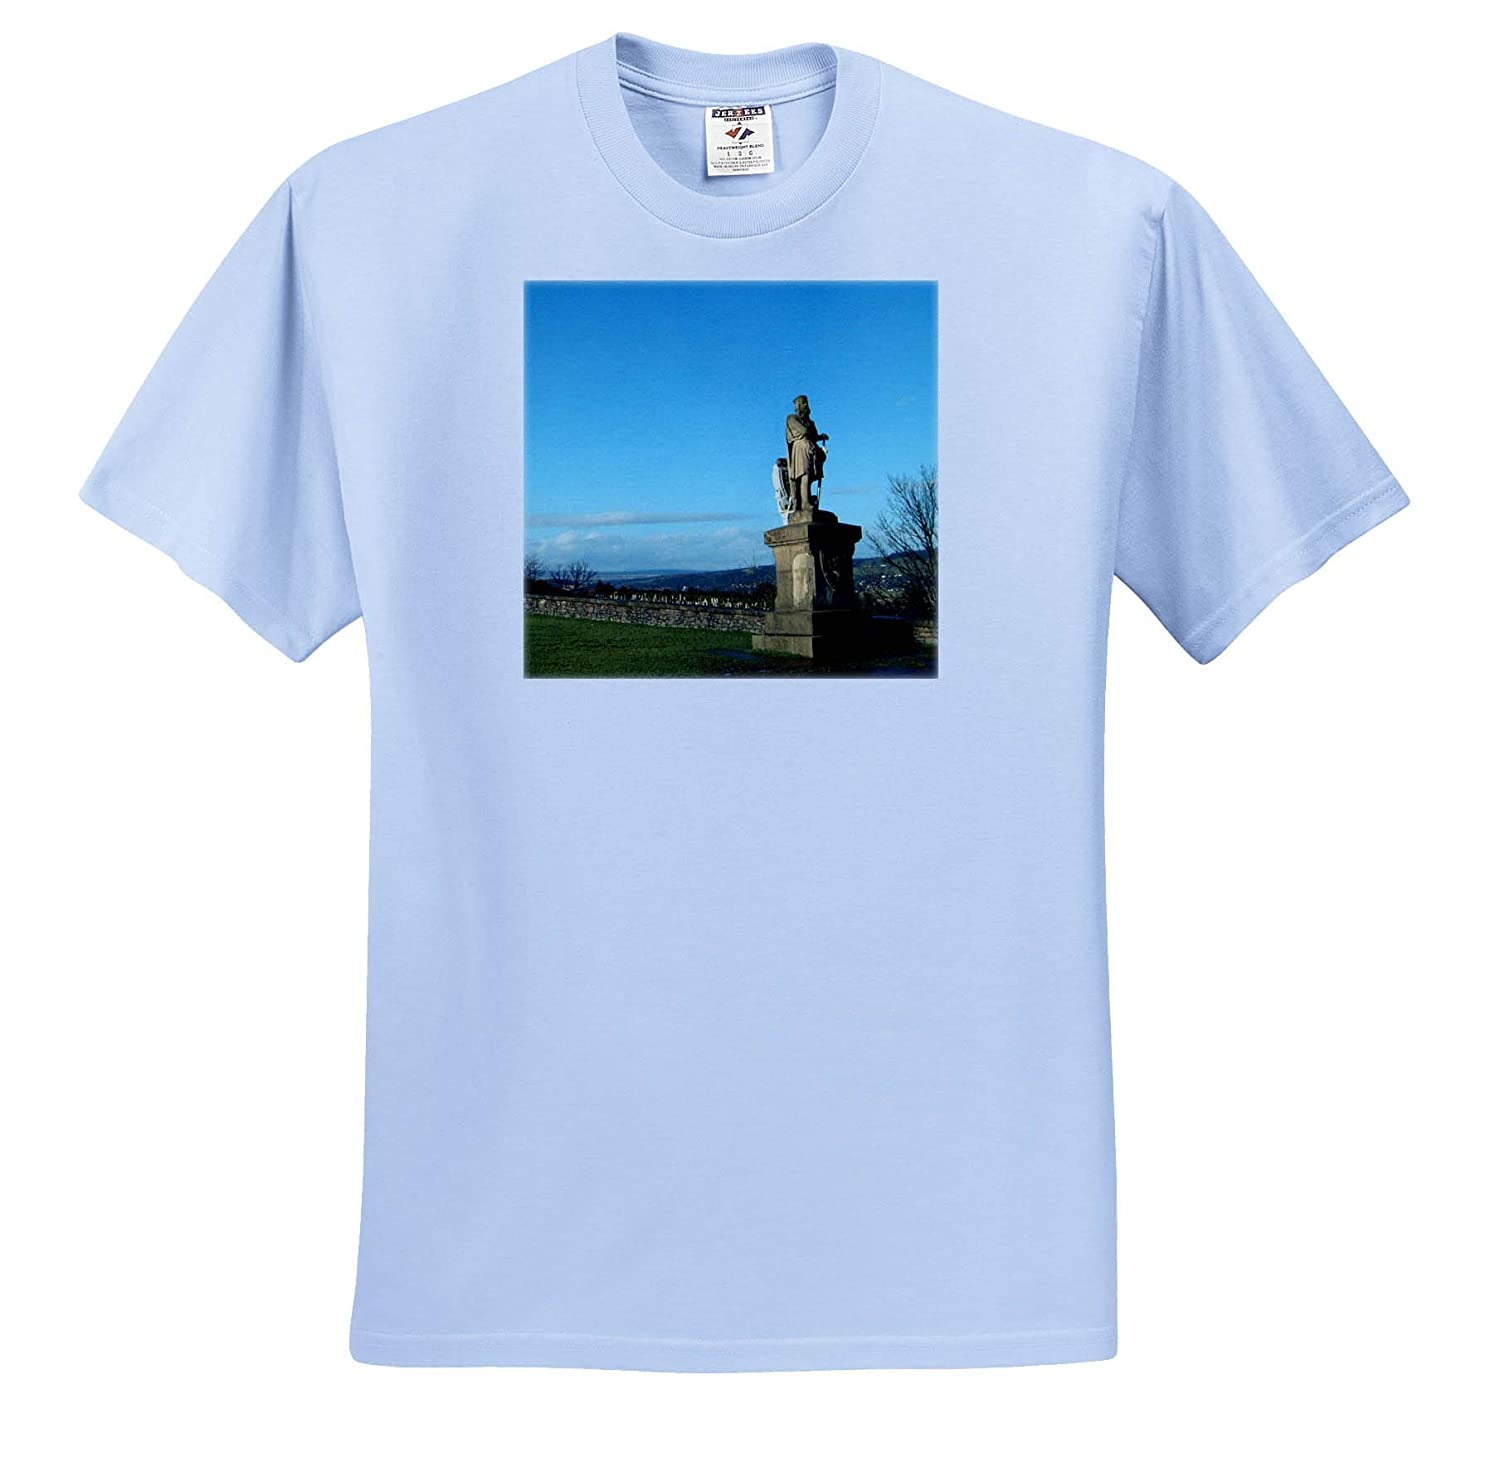 T-Shirts Scotland Statue A Statue at The Stirling Castle in Scotland Off to Right on Green 3dRose Jos Fauxtographee